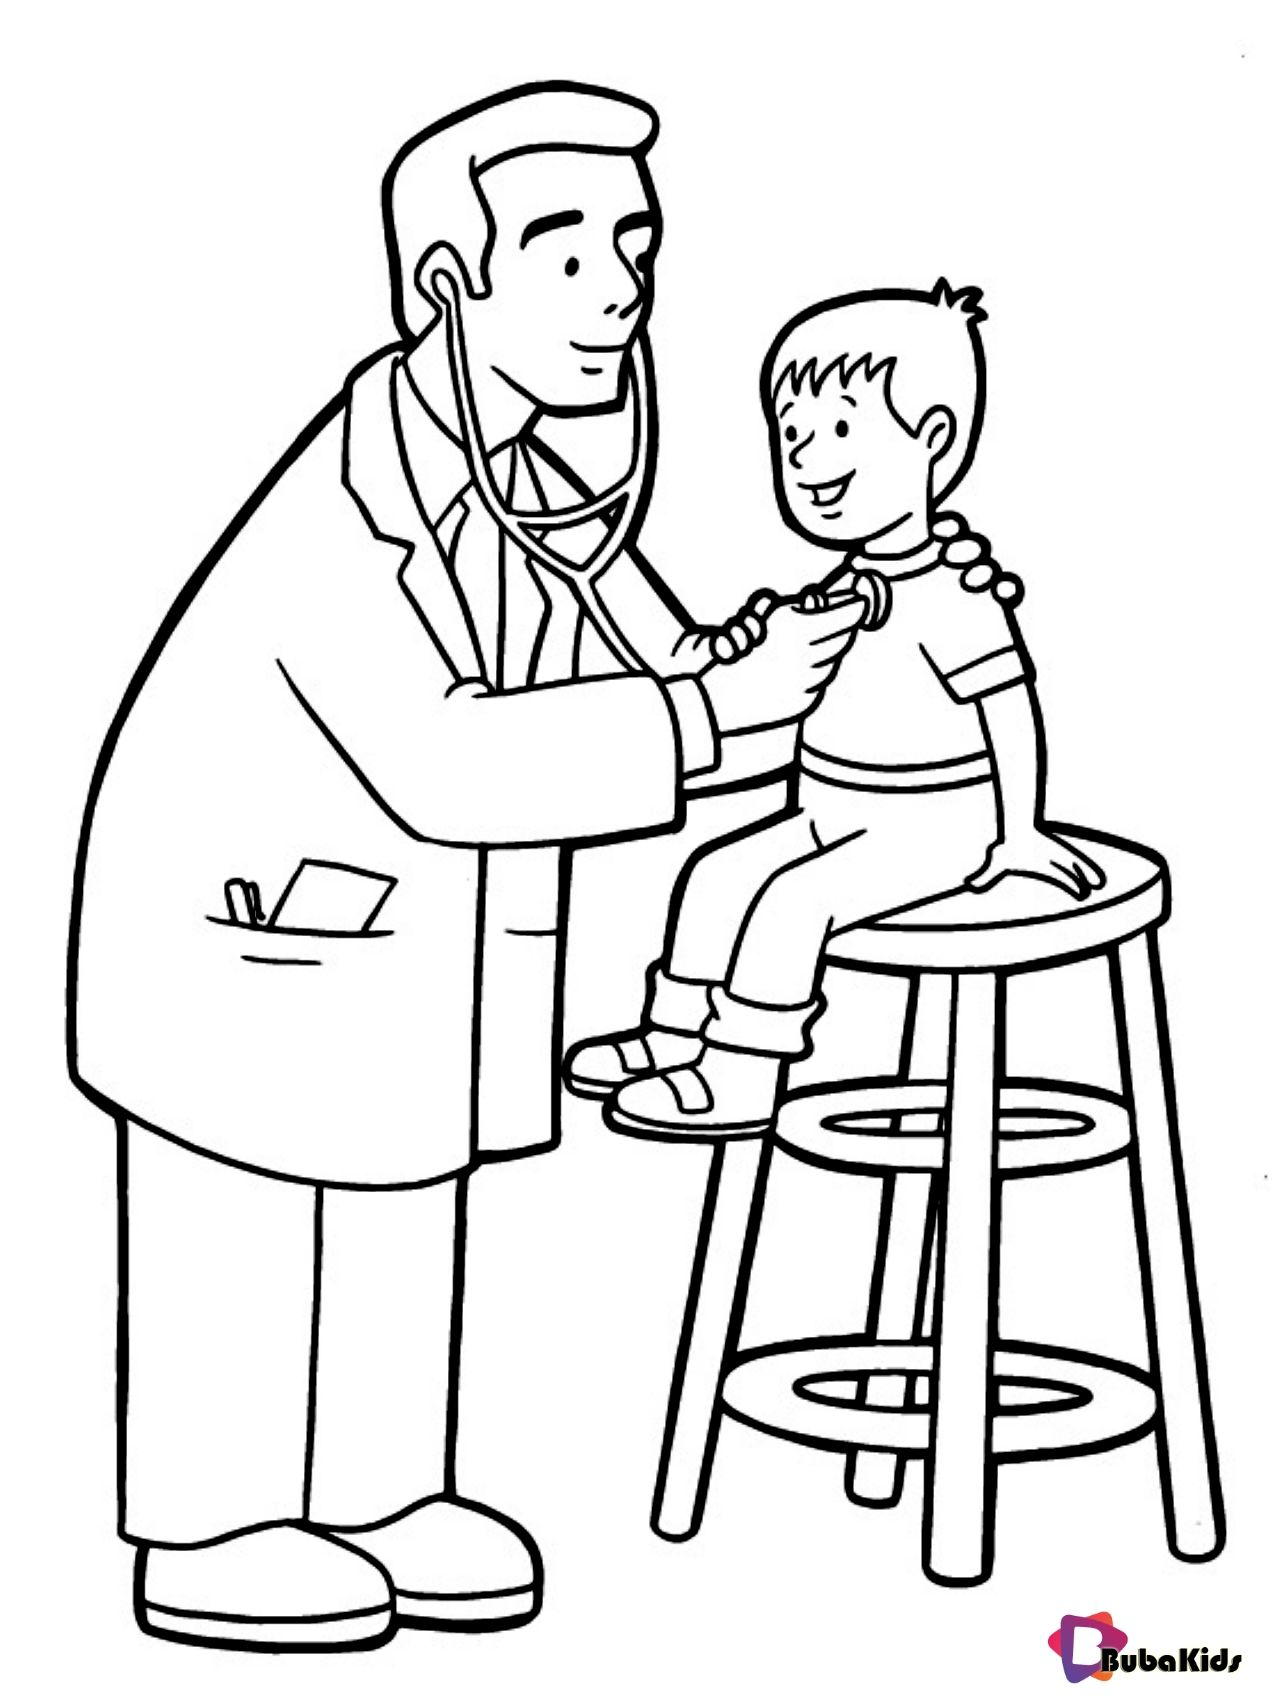 Doctors Nurses And Medical Workers Coloring Pages Collection Of Cartoon Coloring Pages Fo In 2020 Coloring Pages For Kids Super Coloring Pages Cartoon Coloring Pages